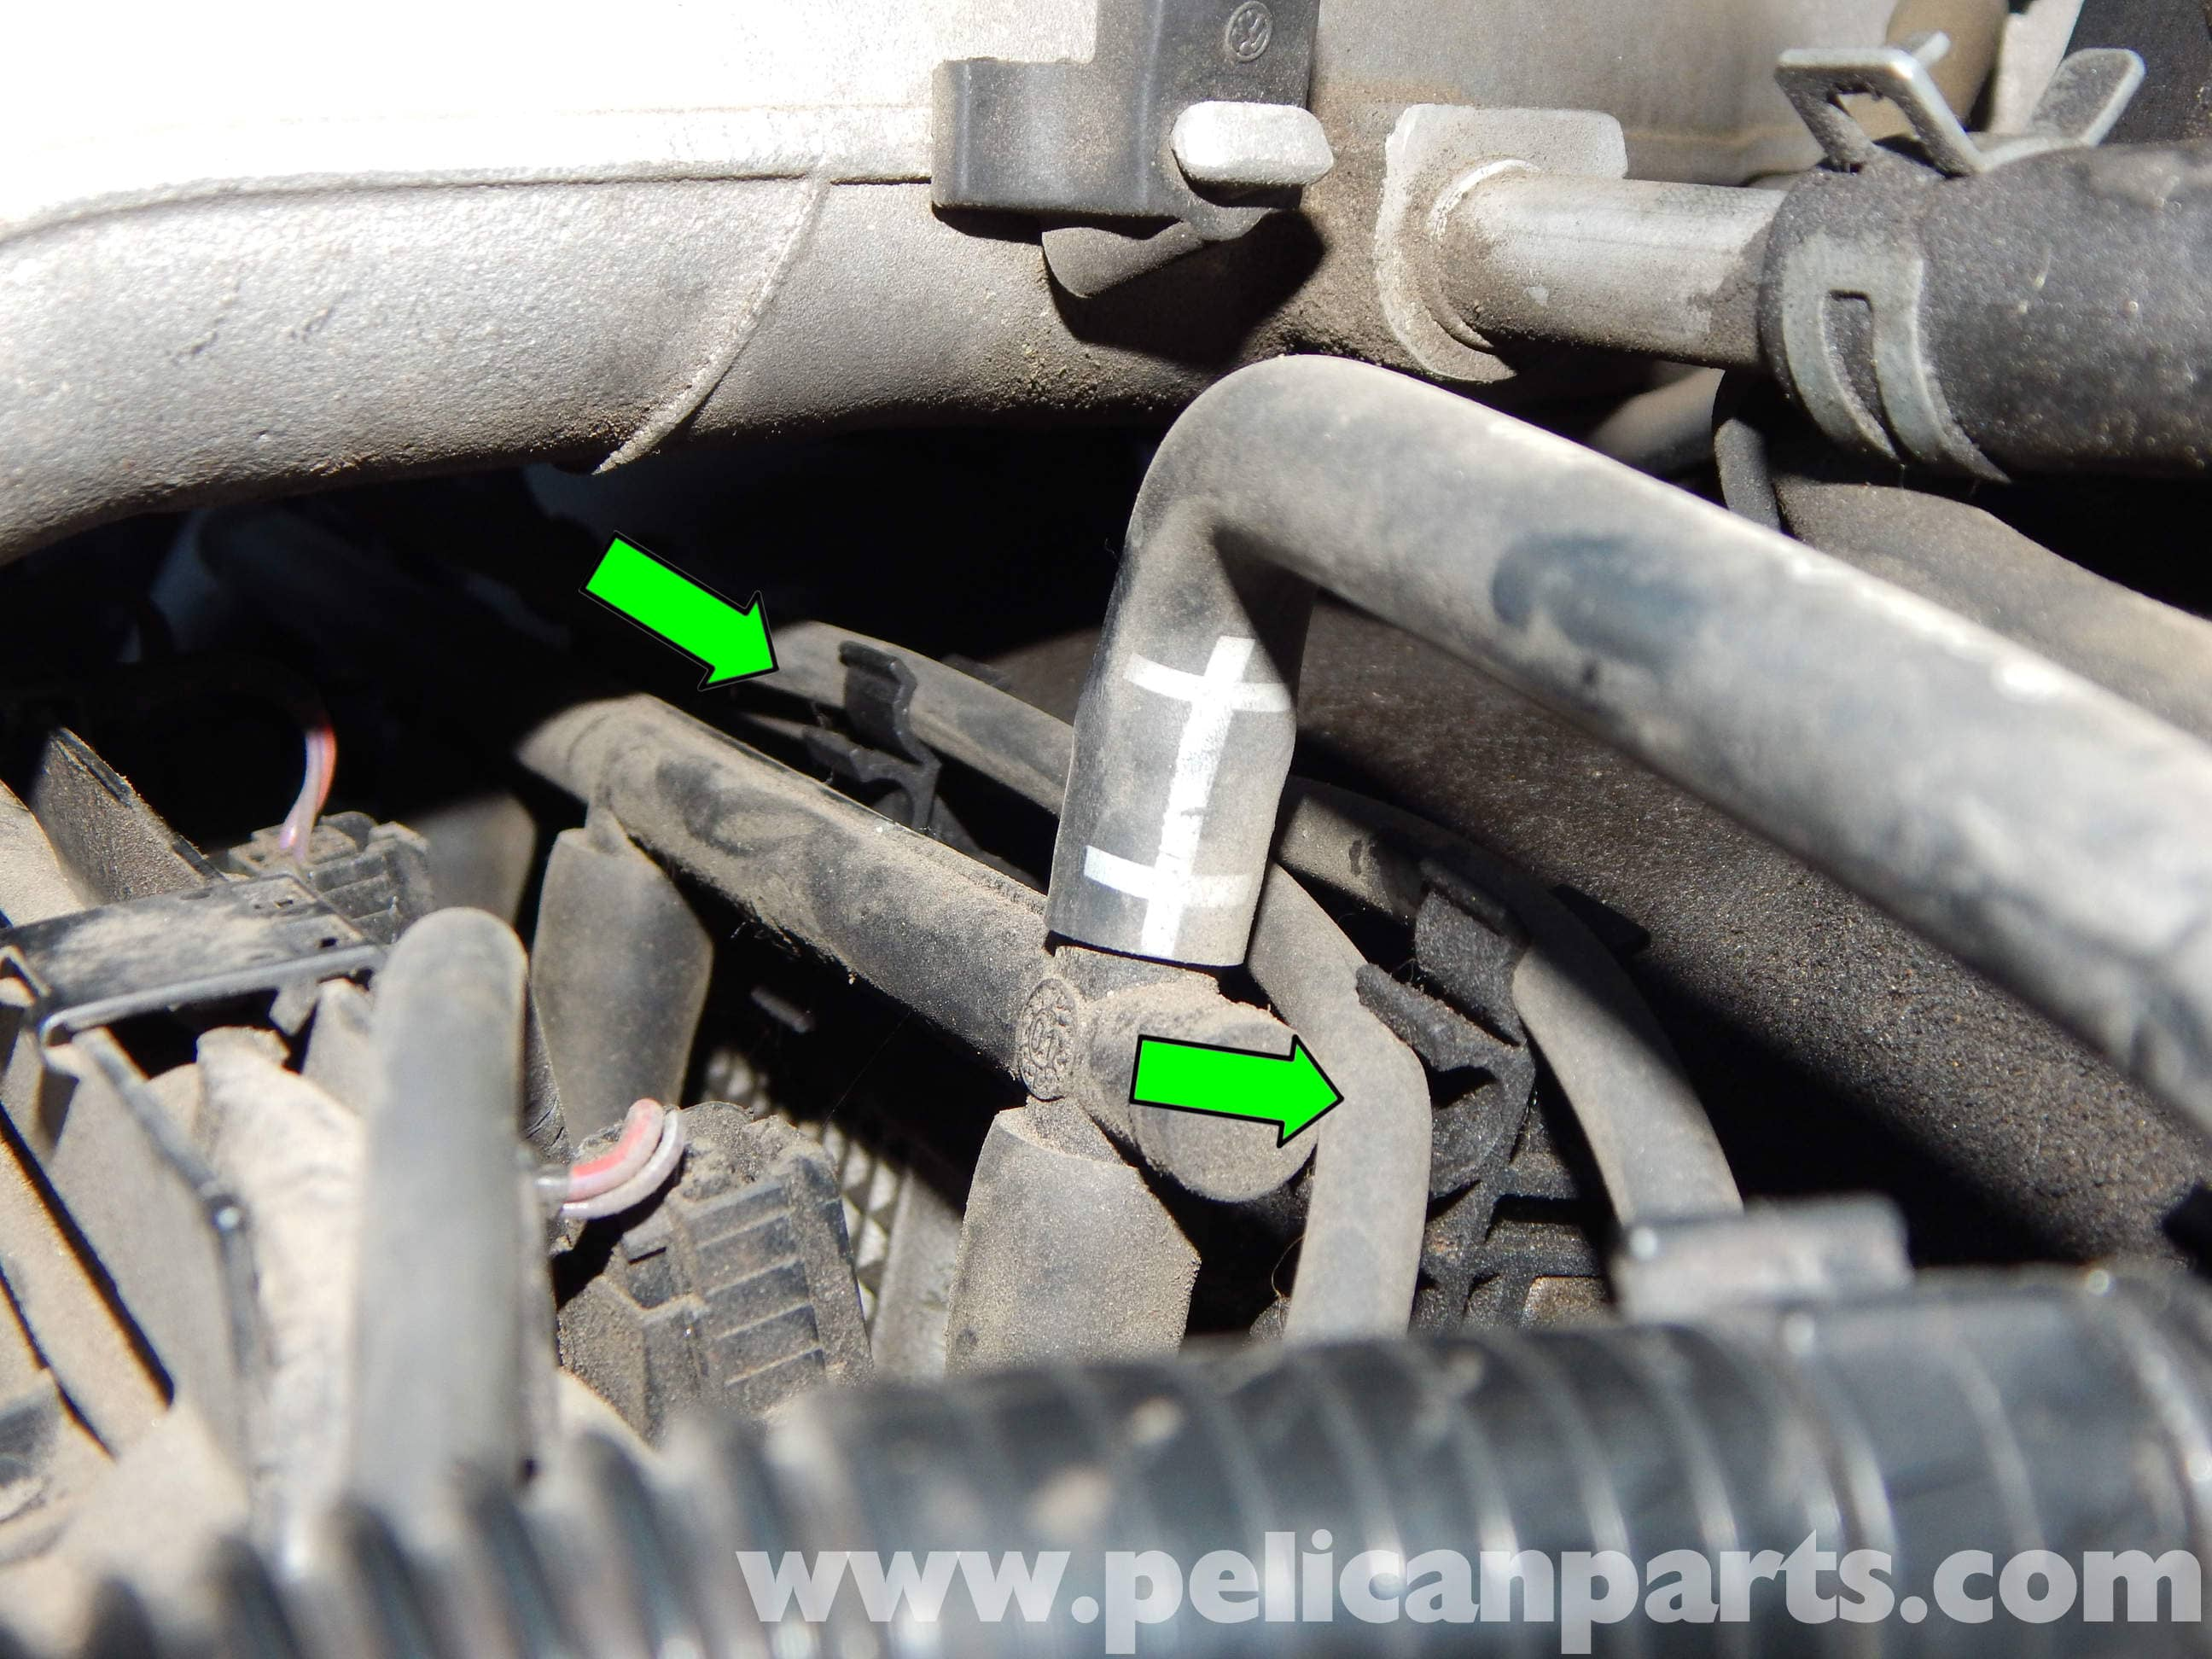 Volkswagen Jetta Mk4 Coil Pack And Spark Plug Wire Replacement 2014 Wiring Diagram Large Image Extra